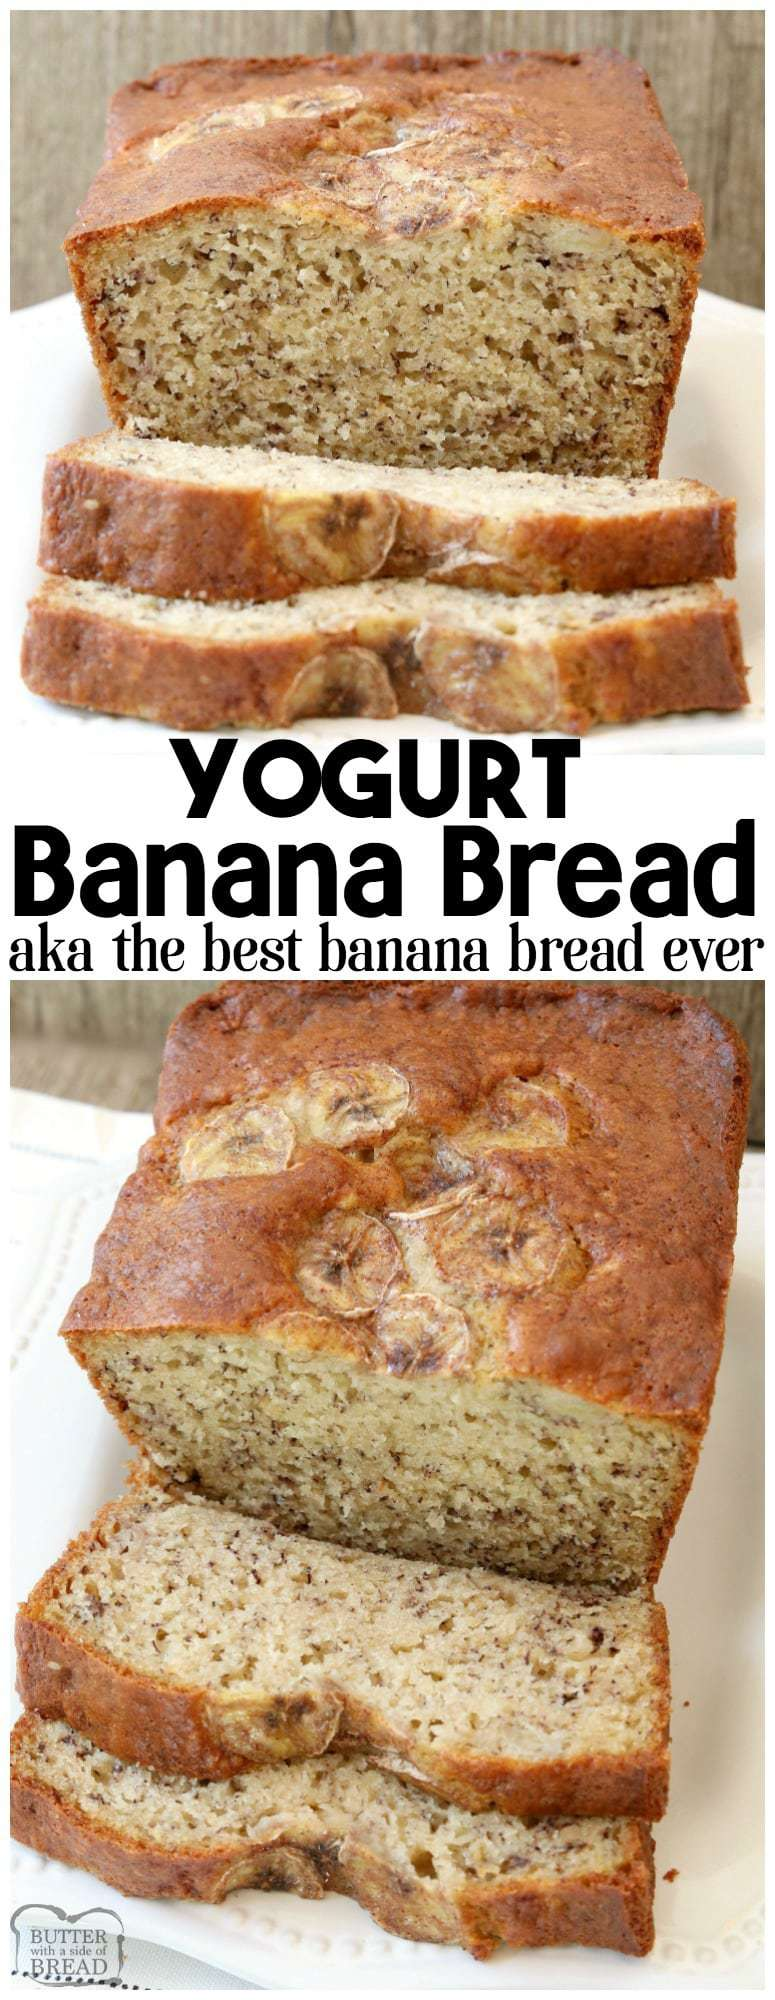 YOGURT BANANA BREAD RECIPE {VIDEO INCLUDED!}